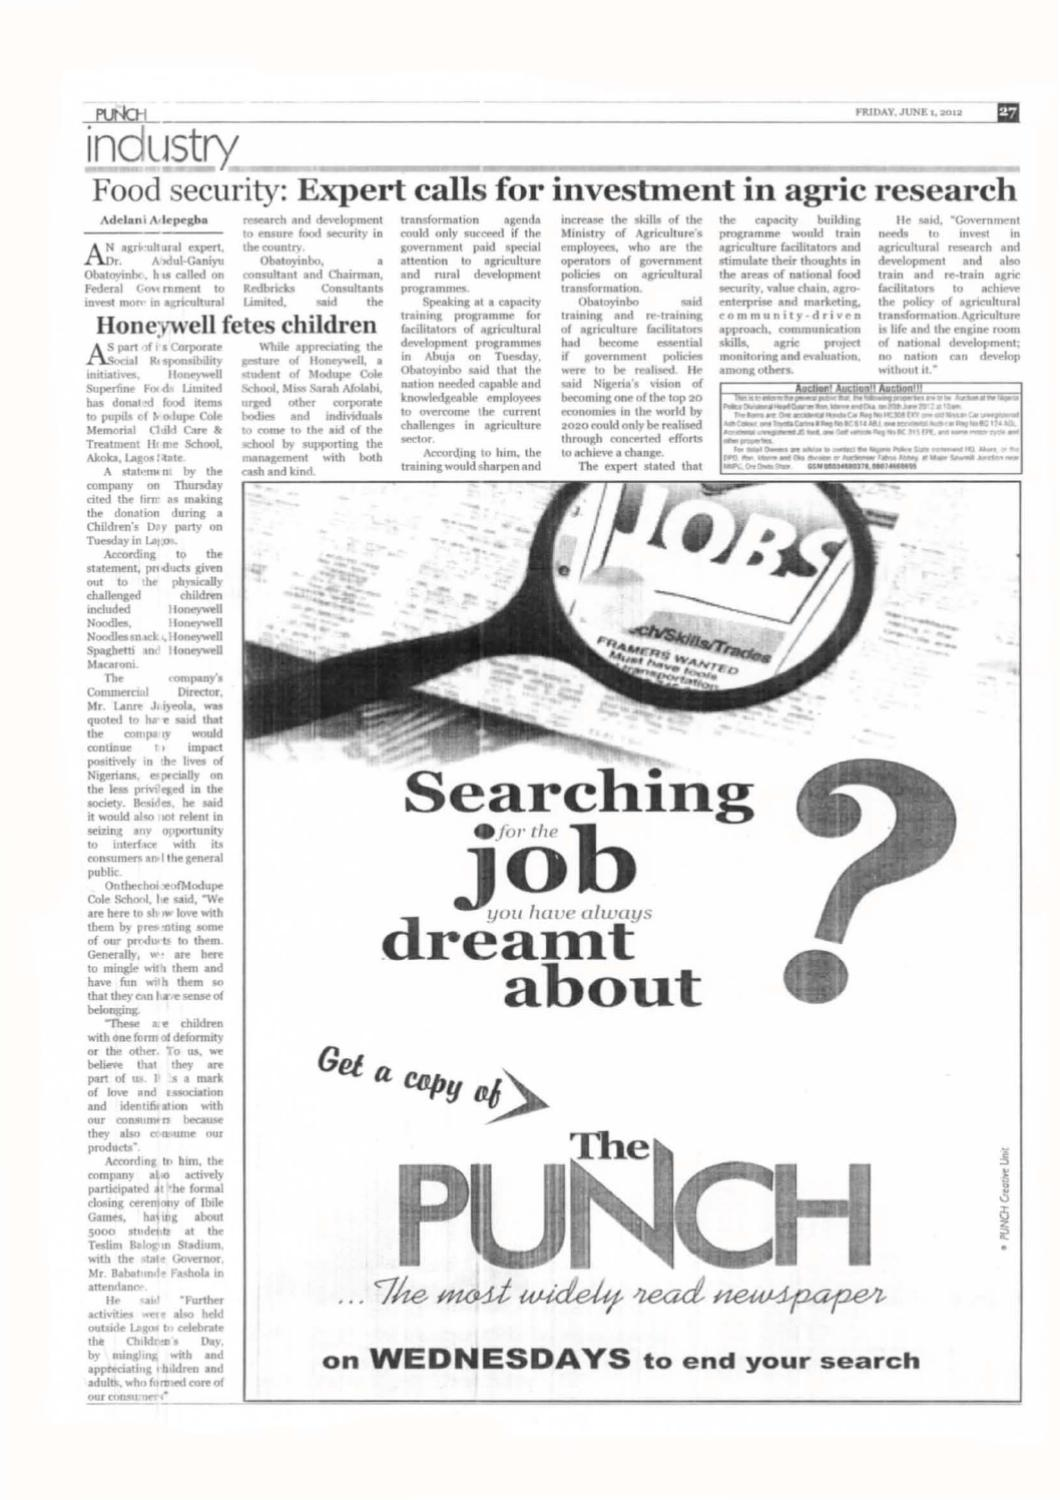 THE PUNCH, 01 JUNE, 2012 by International Institute of